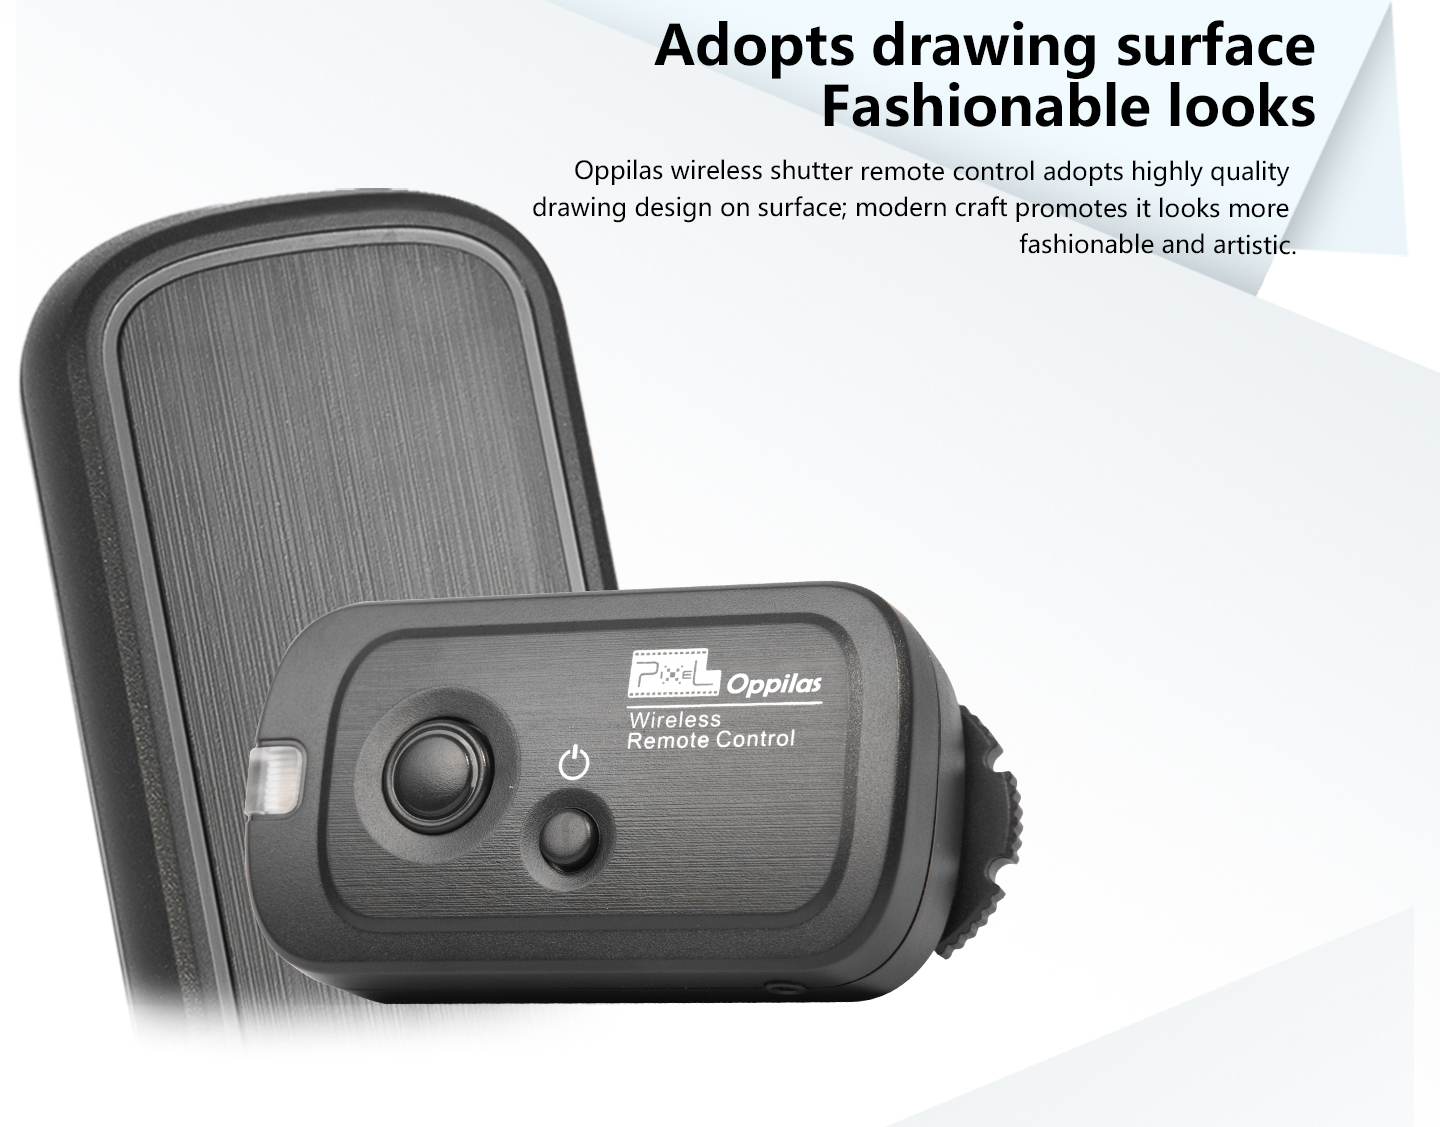 Adopts drawing surface Fashionable looks